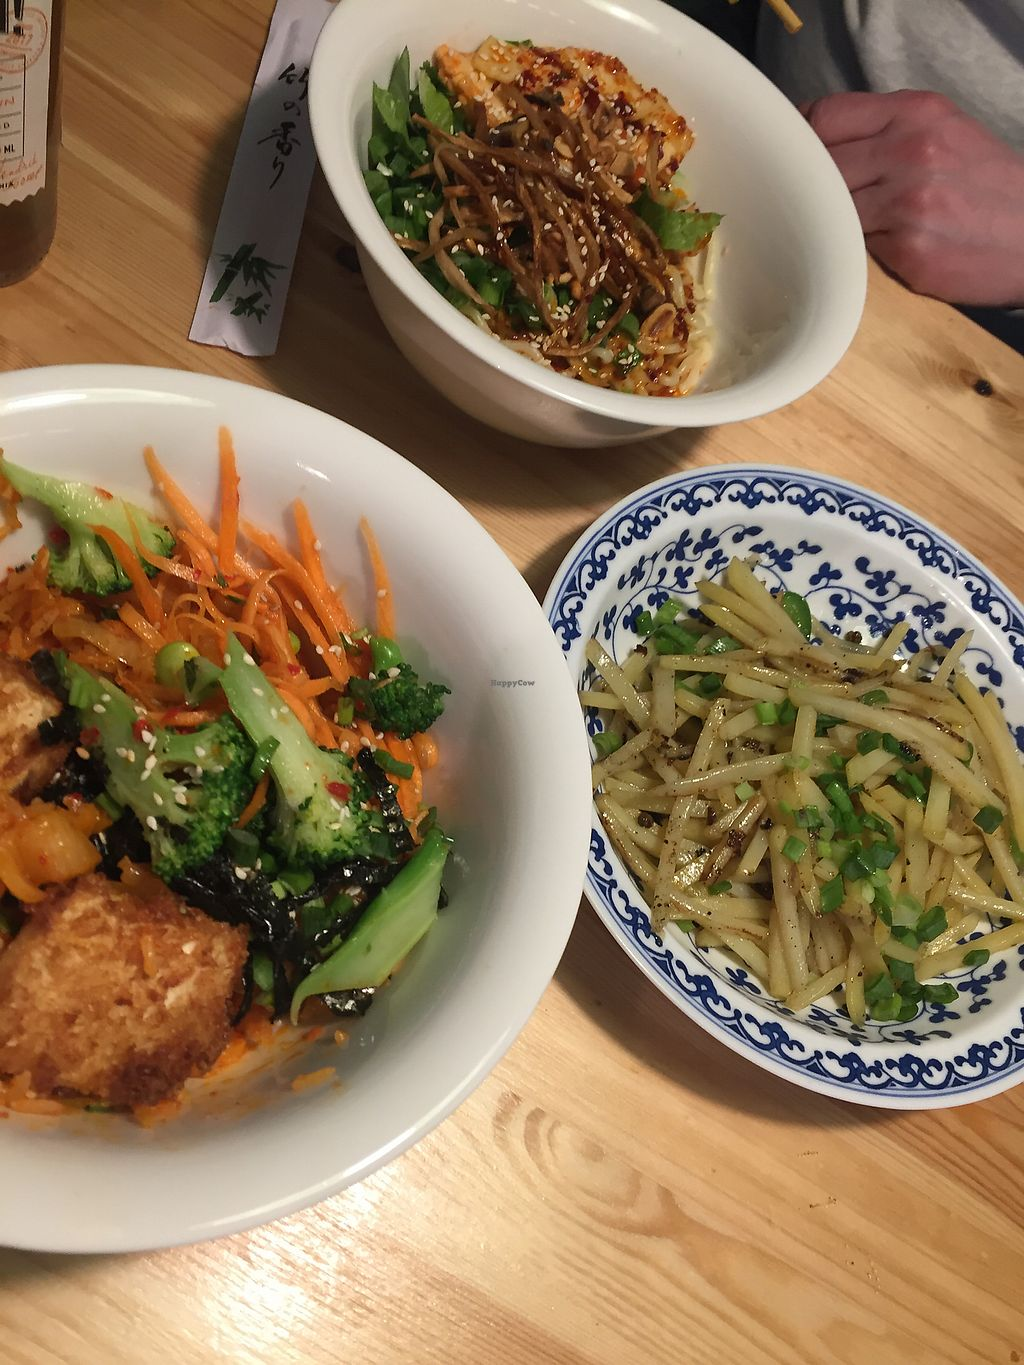 "Photo of Noodle Box  by <a href=""/members/profile/Emmeline%20H"">Emmeline H</a> <br/>good food <br/> April 8, 2018  - <a href='/contact/abuse/image/87912/382600'>Report</a>"